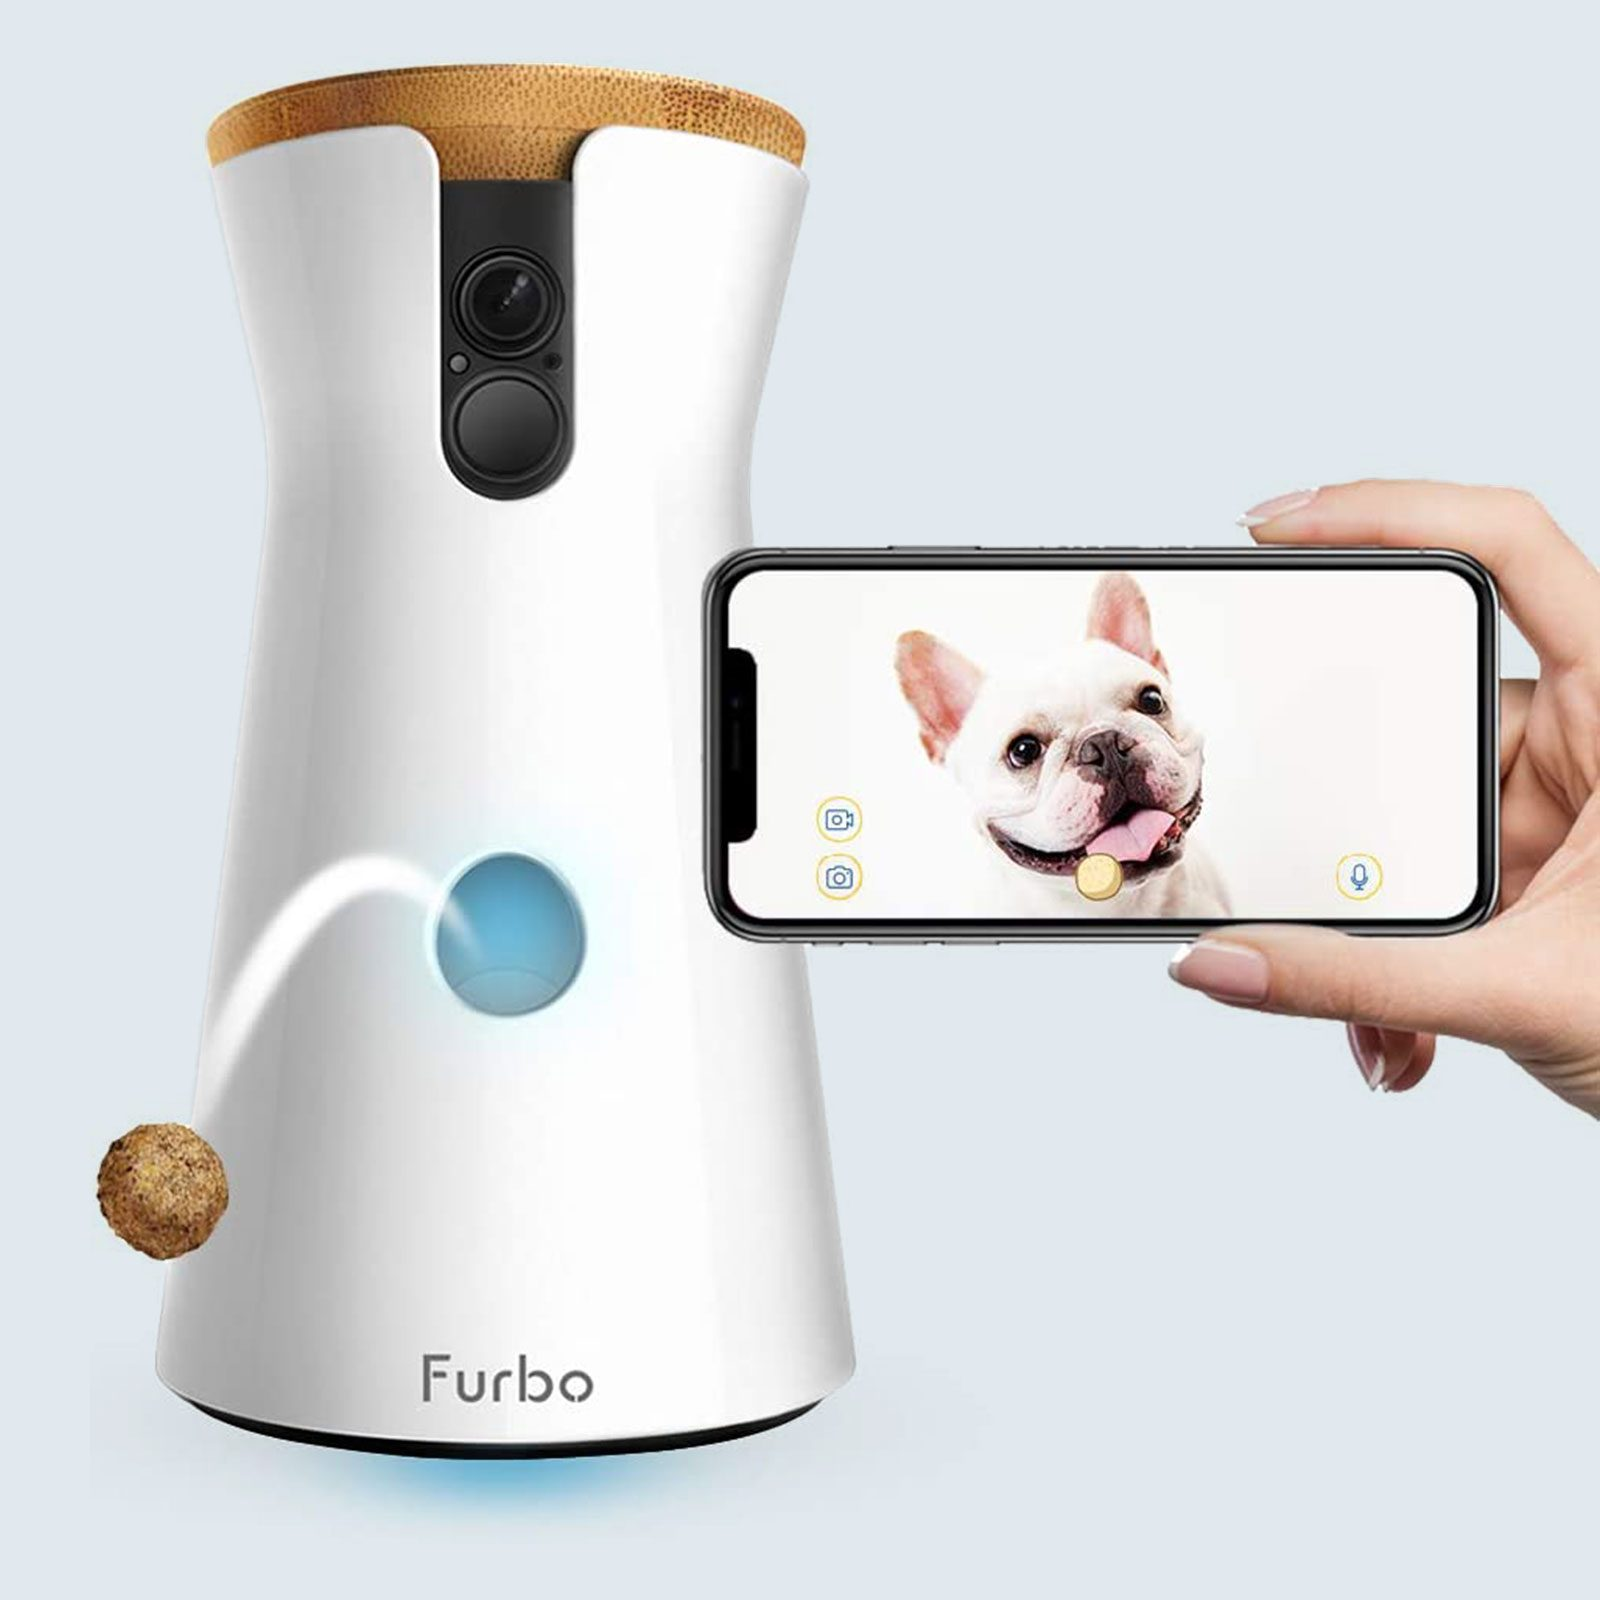 Best pet camera for dogs: Furbo